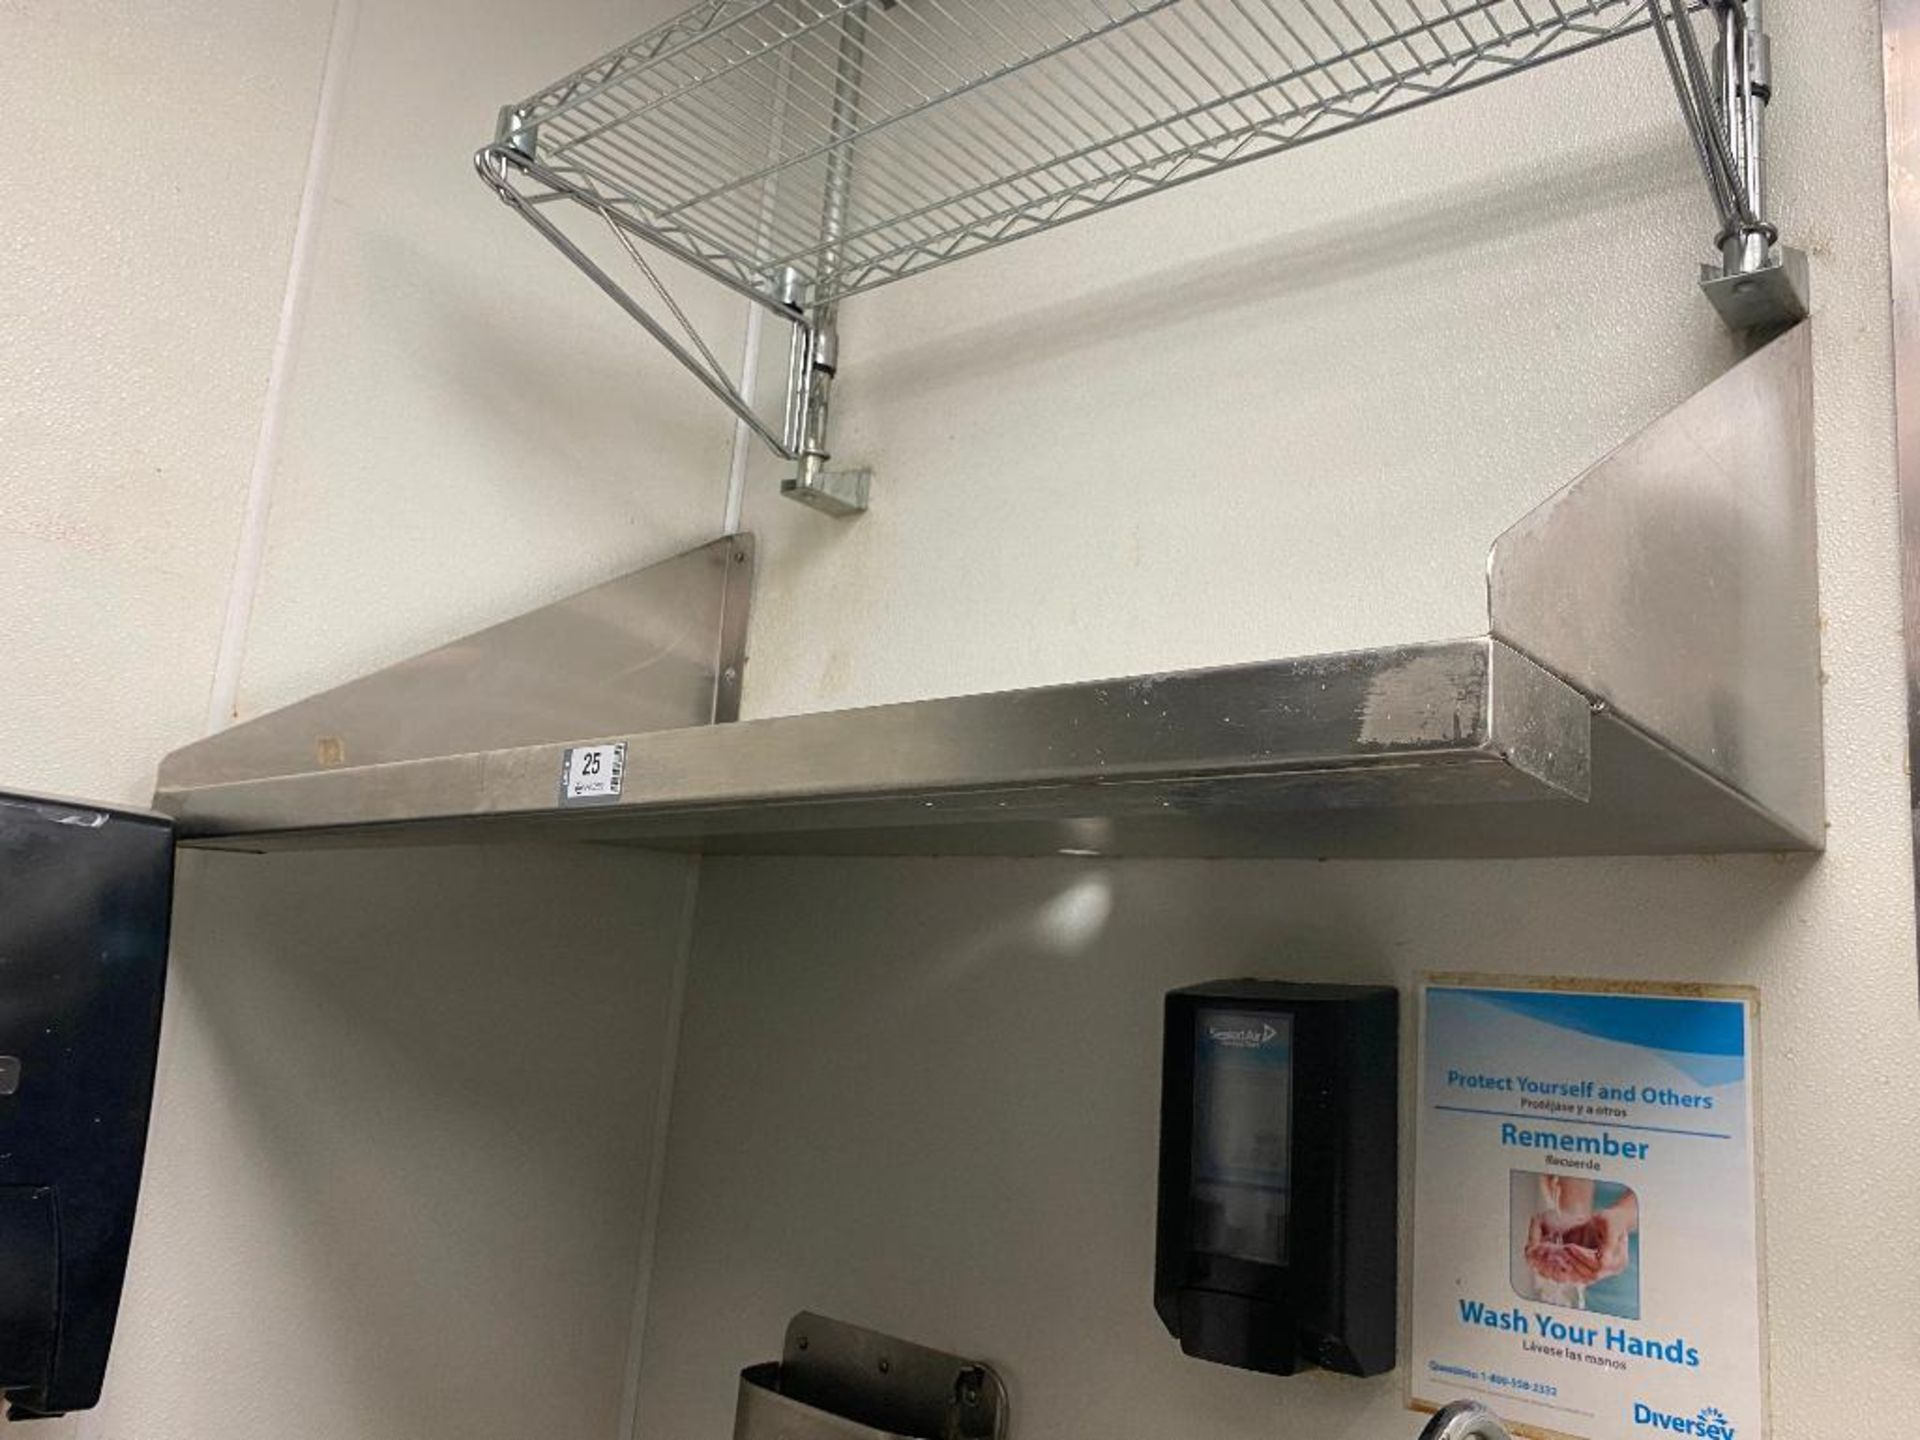 """42"""" X 22"""" STAINLESS STEEL WALL SHELF & 35"""" X 15"""" CHROME WIRE SHELF - NOTE: REQUIRES REMOVAL FROM WAL - Image 5 of 5"""